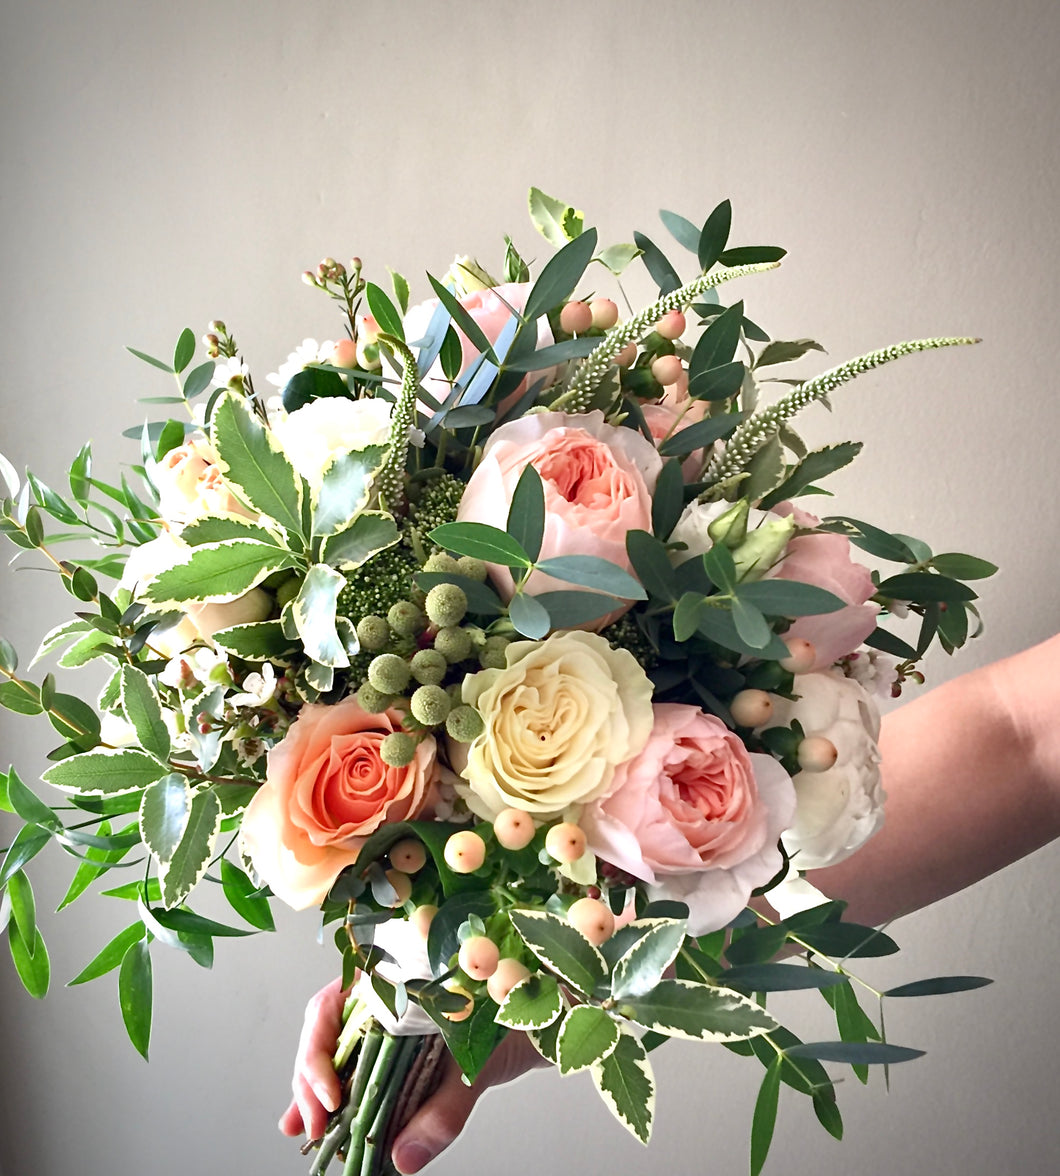 Peach and Ivory Hand-tied Bridal Bouquet - Flowerplustoronto